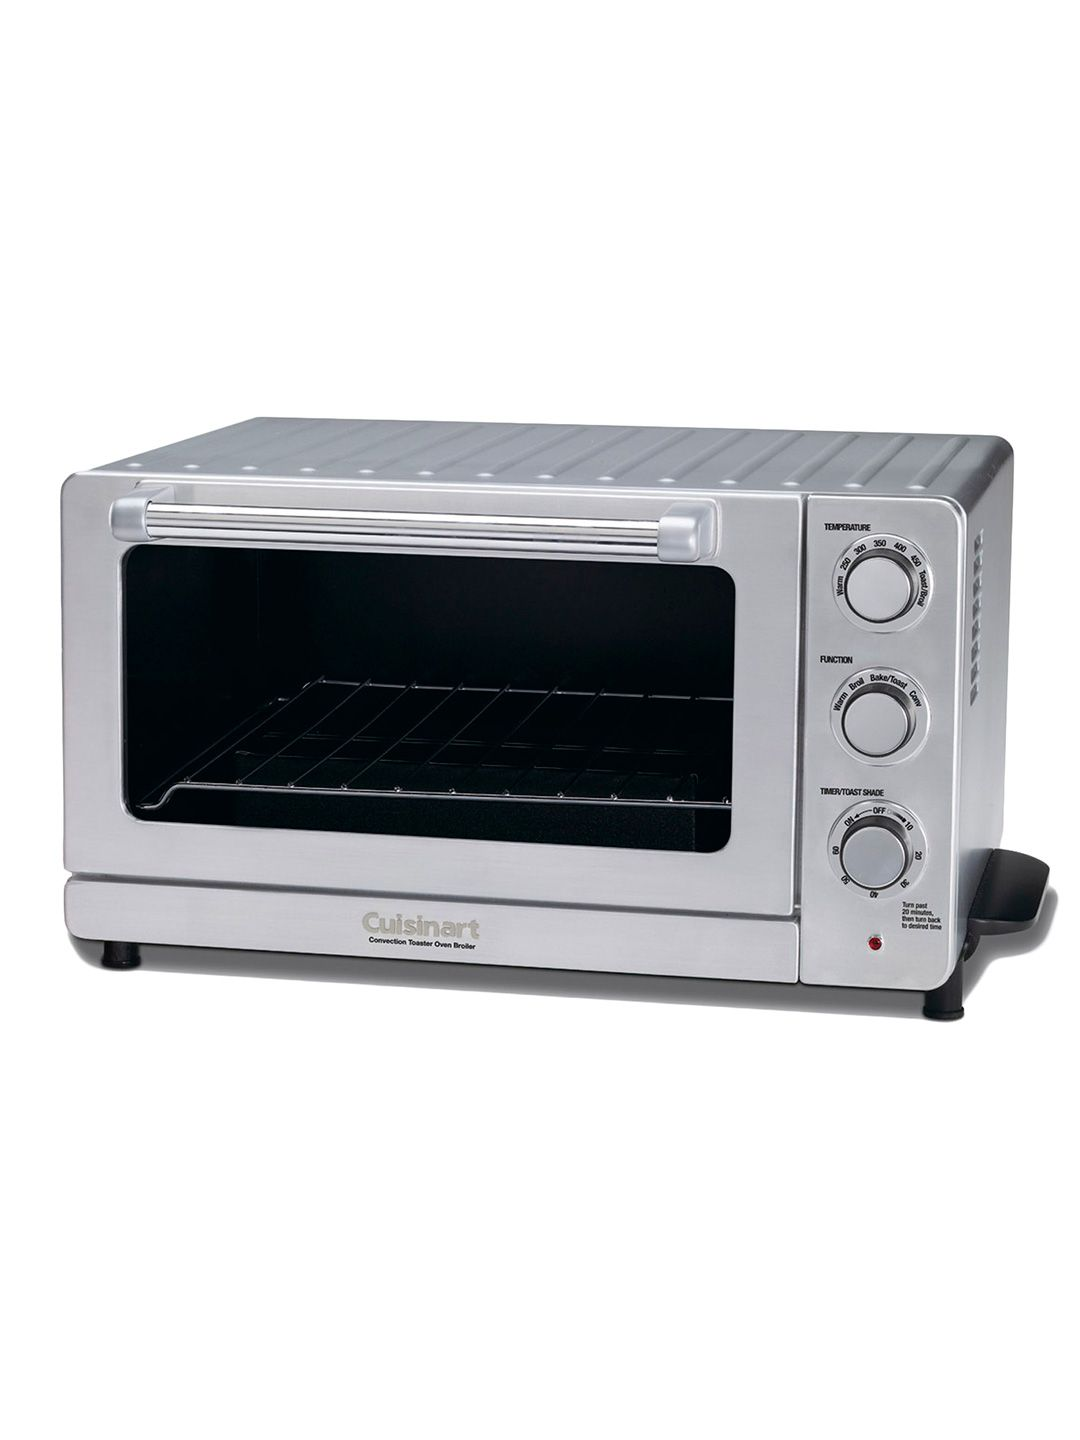 Convection Toaster Oven Broiler Cuisinart Toaster Oven Convection Toaster Oven Toaster